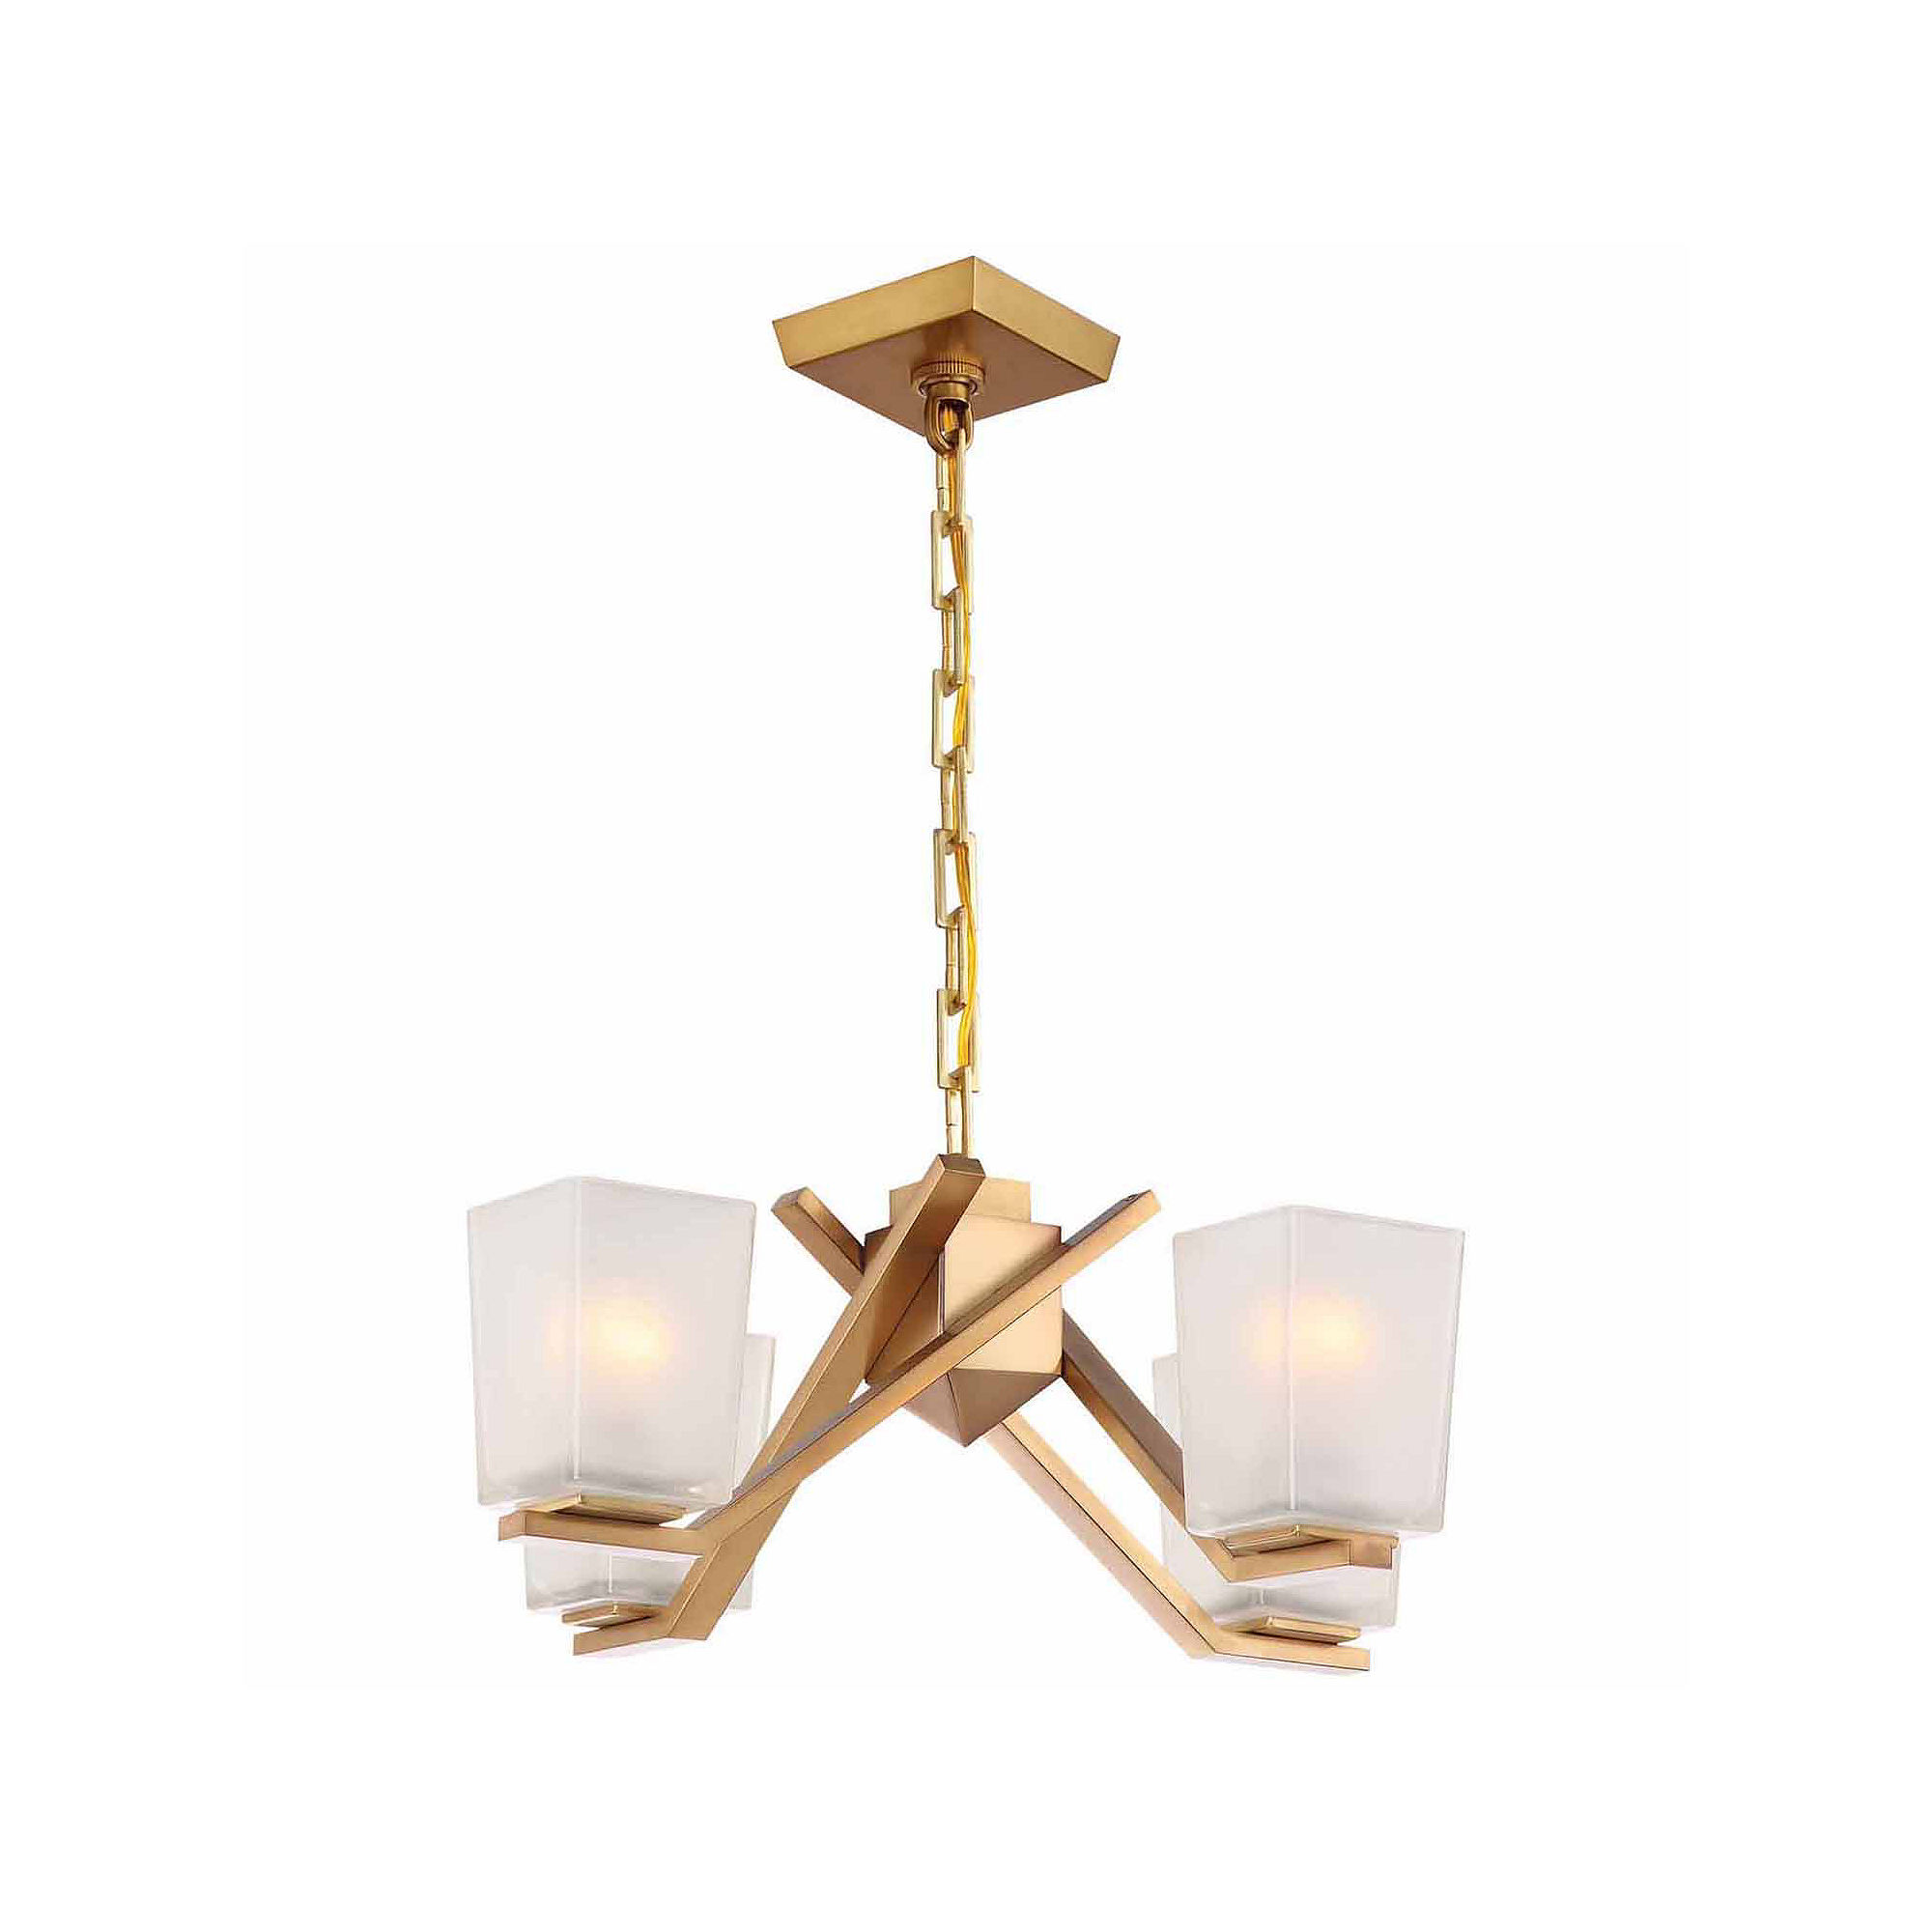 Filament Design 4-Light Vintage Brass Chandelier